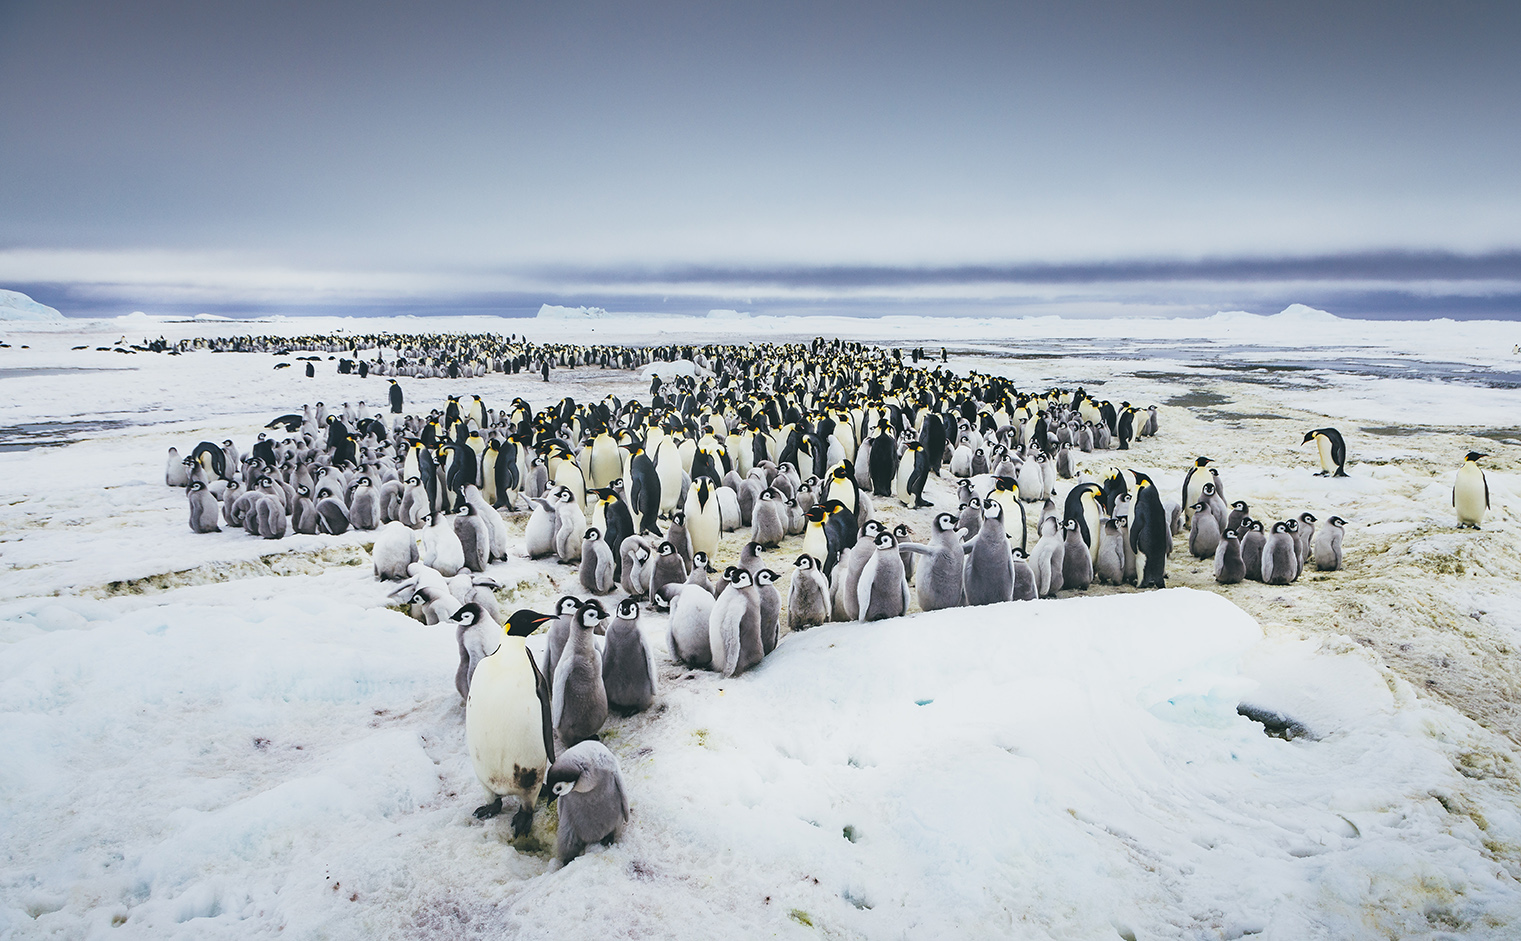 Snow Hill Island is home to an estimated 10,000 Emperor penguins and their chicks